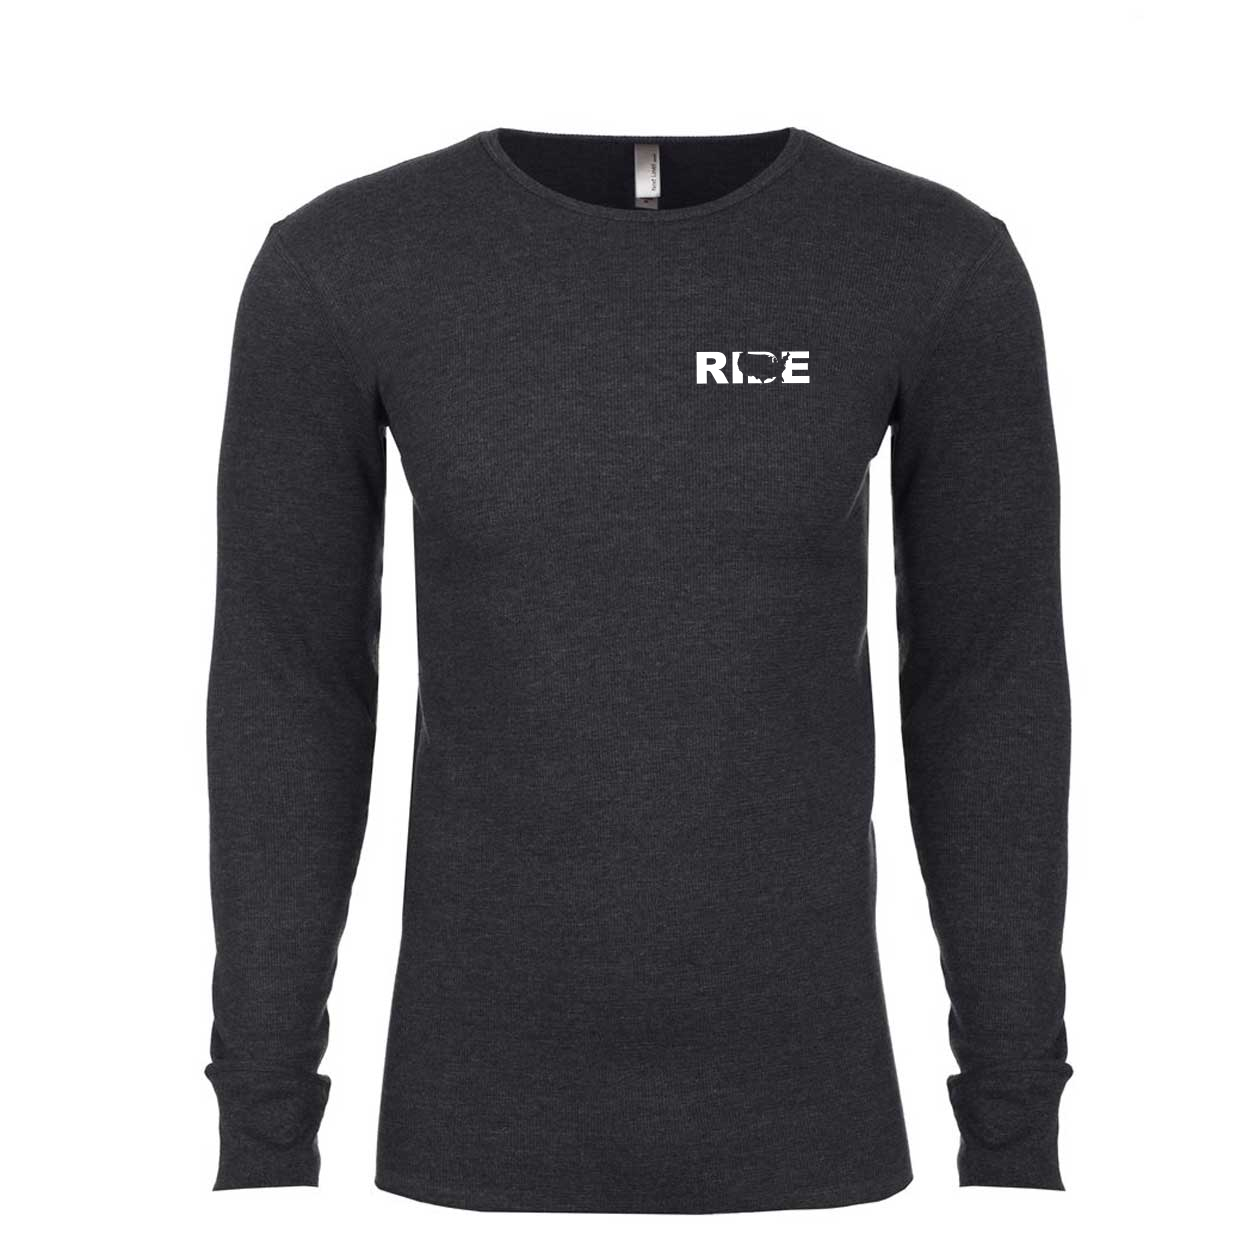 Ride United States Long Sleeve Thermal Shirt Heather Charcoal (White Logo)